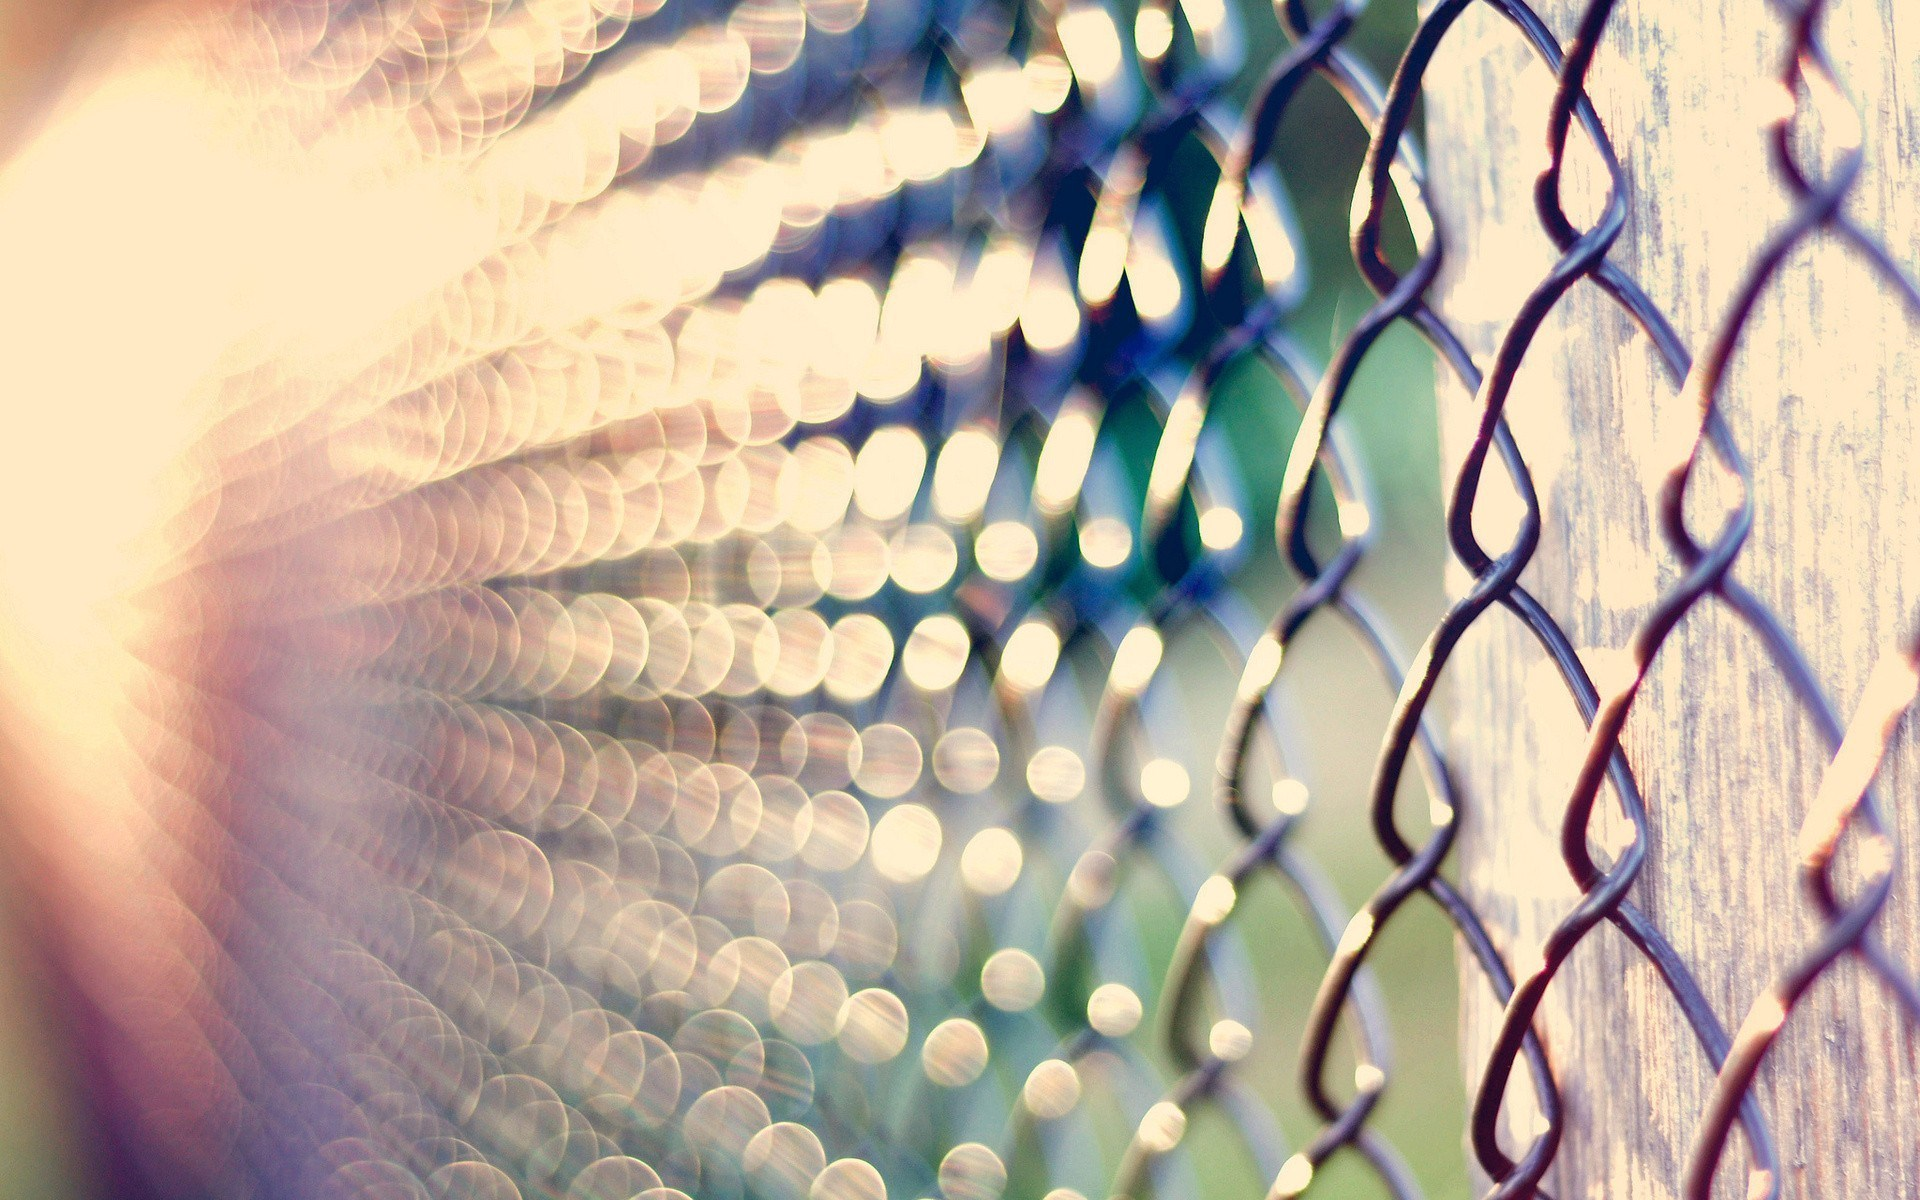 20 Stunning Hd Fence Wallpapers